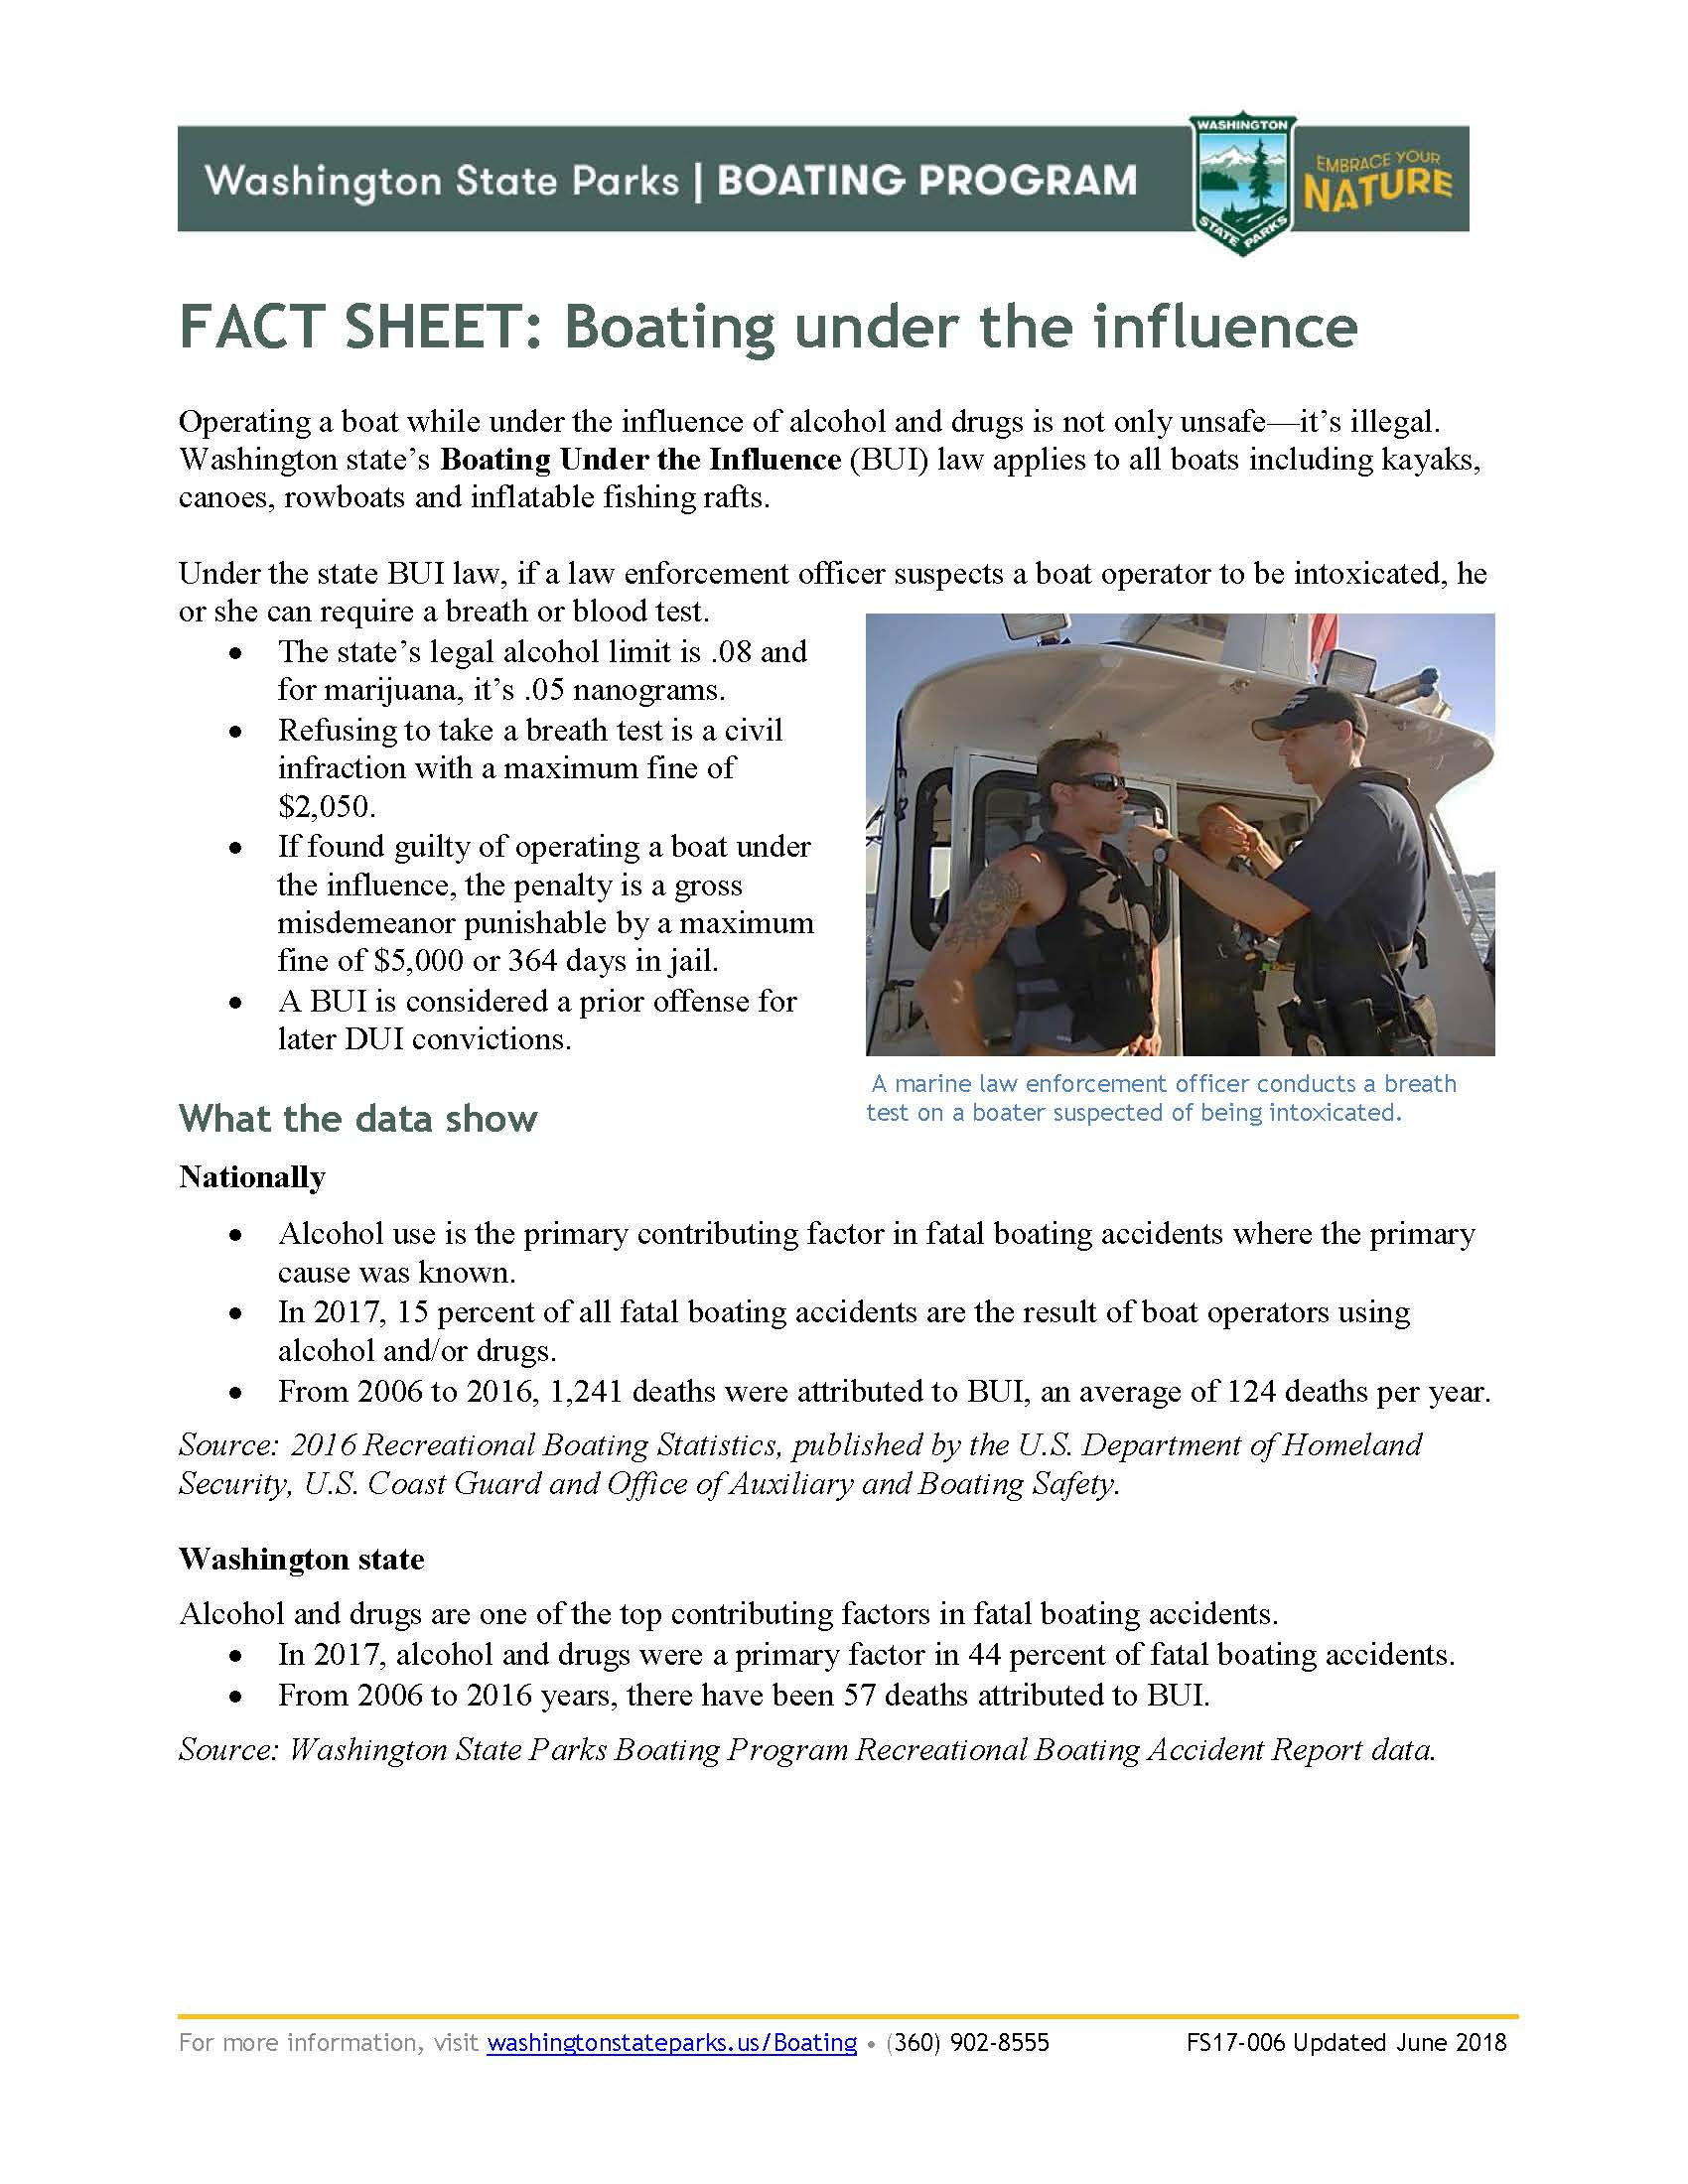 FS18-006_Boating Under the Influence Fact Sheet_Page_1